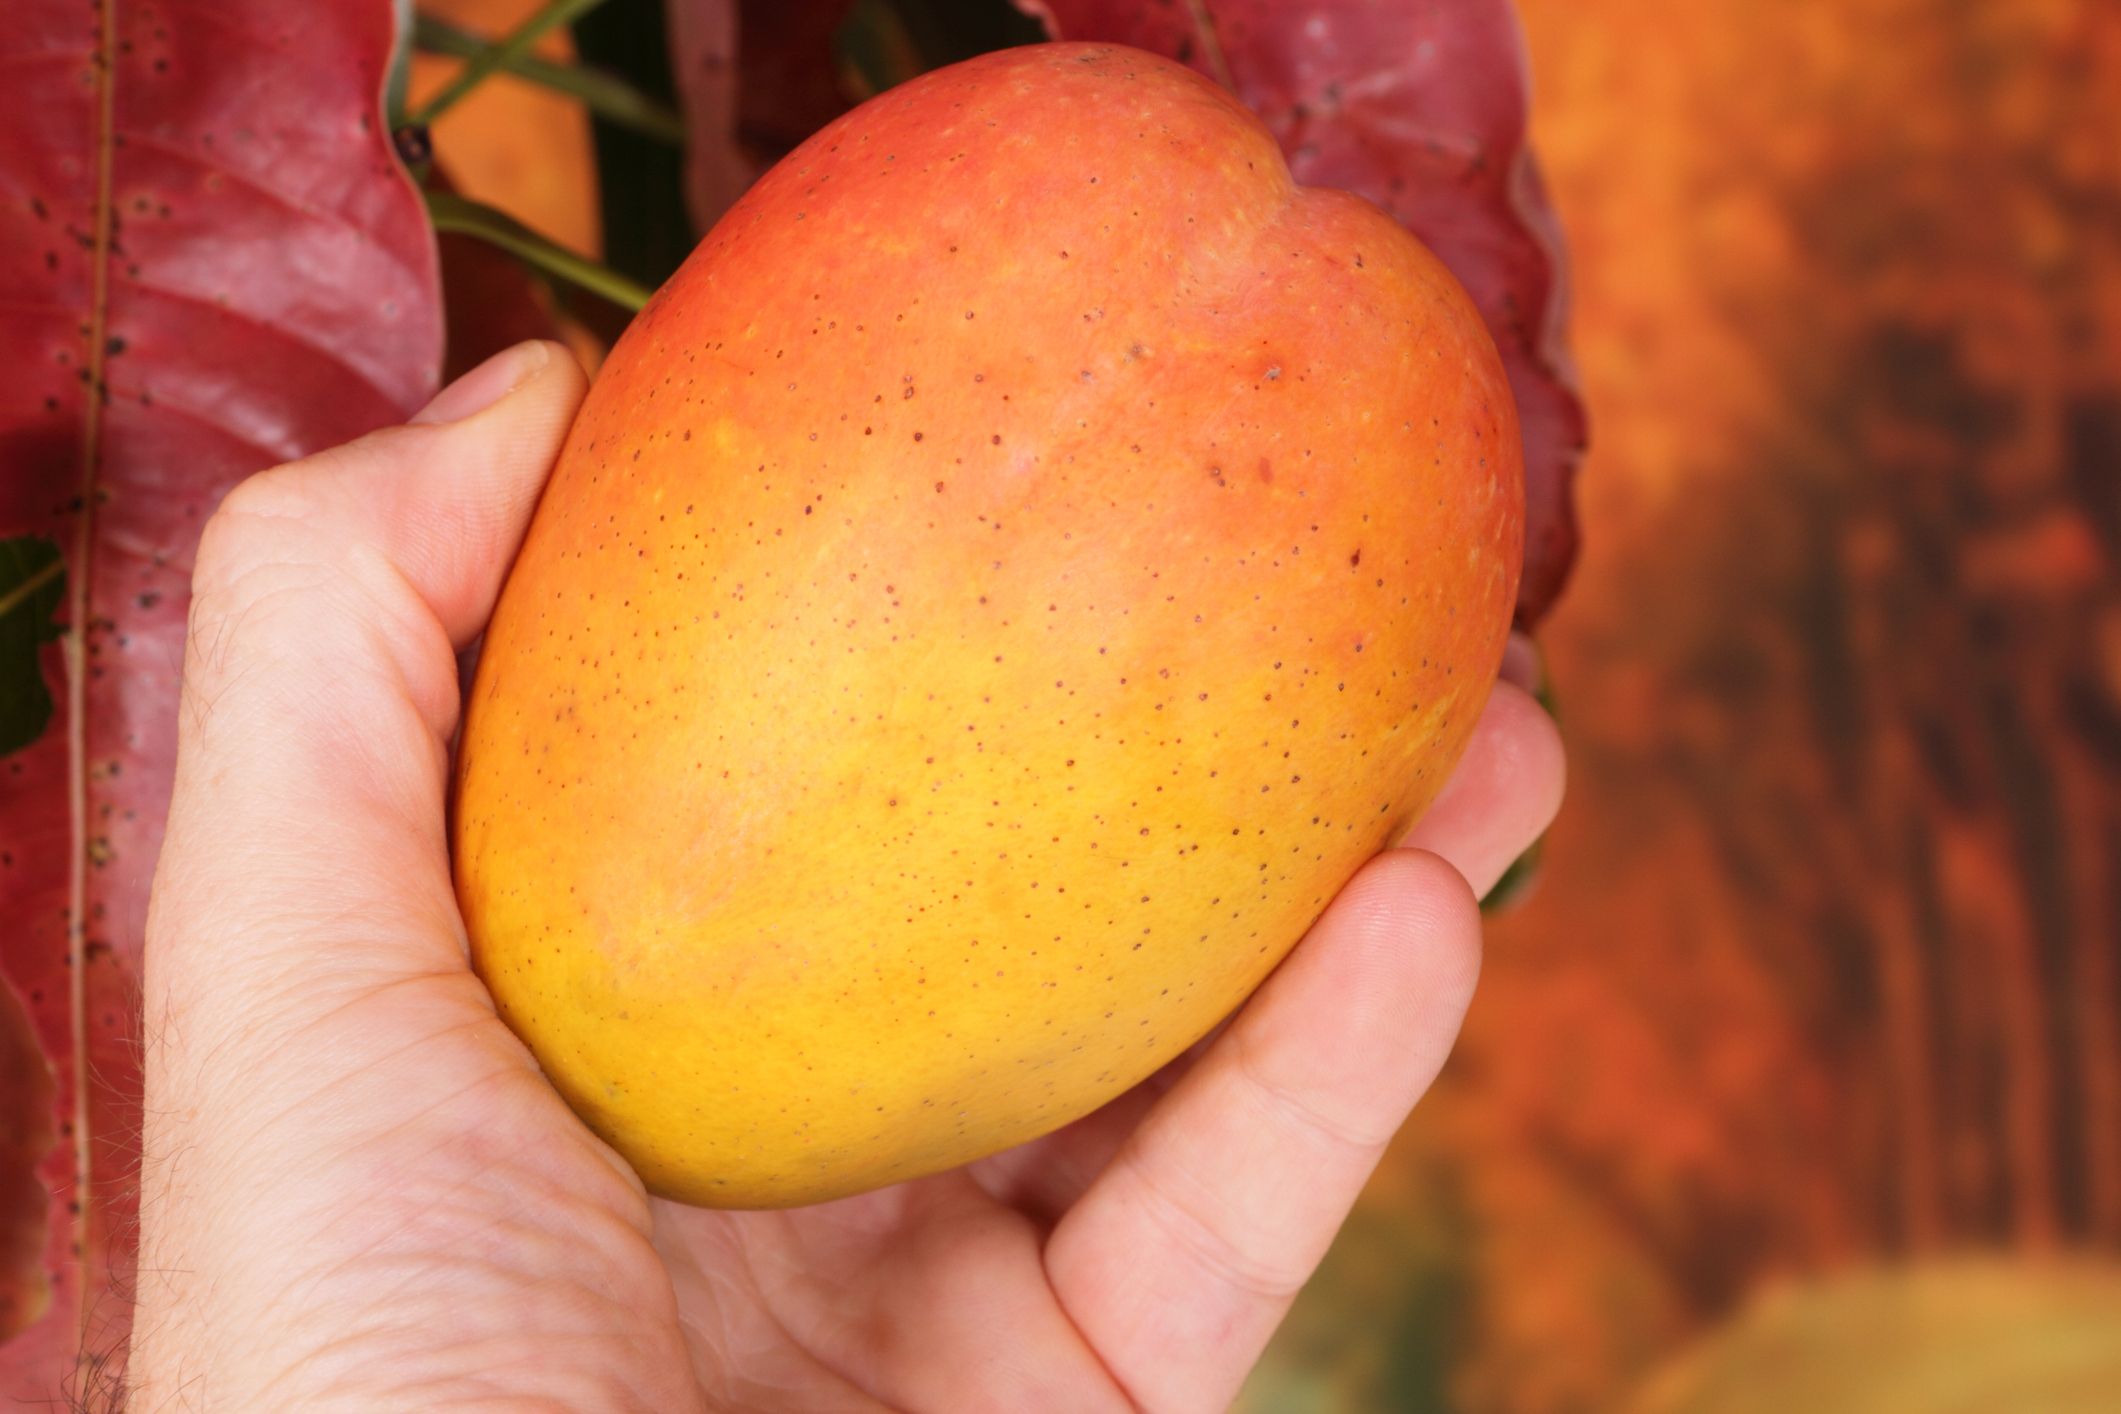 Mango being picked from tree. (Getty Images)